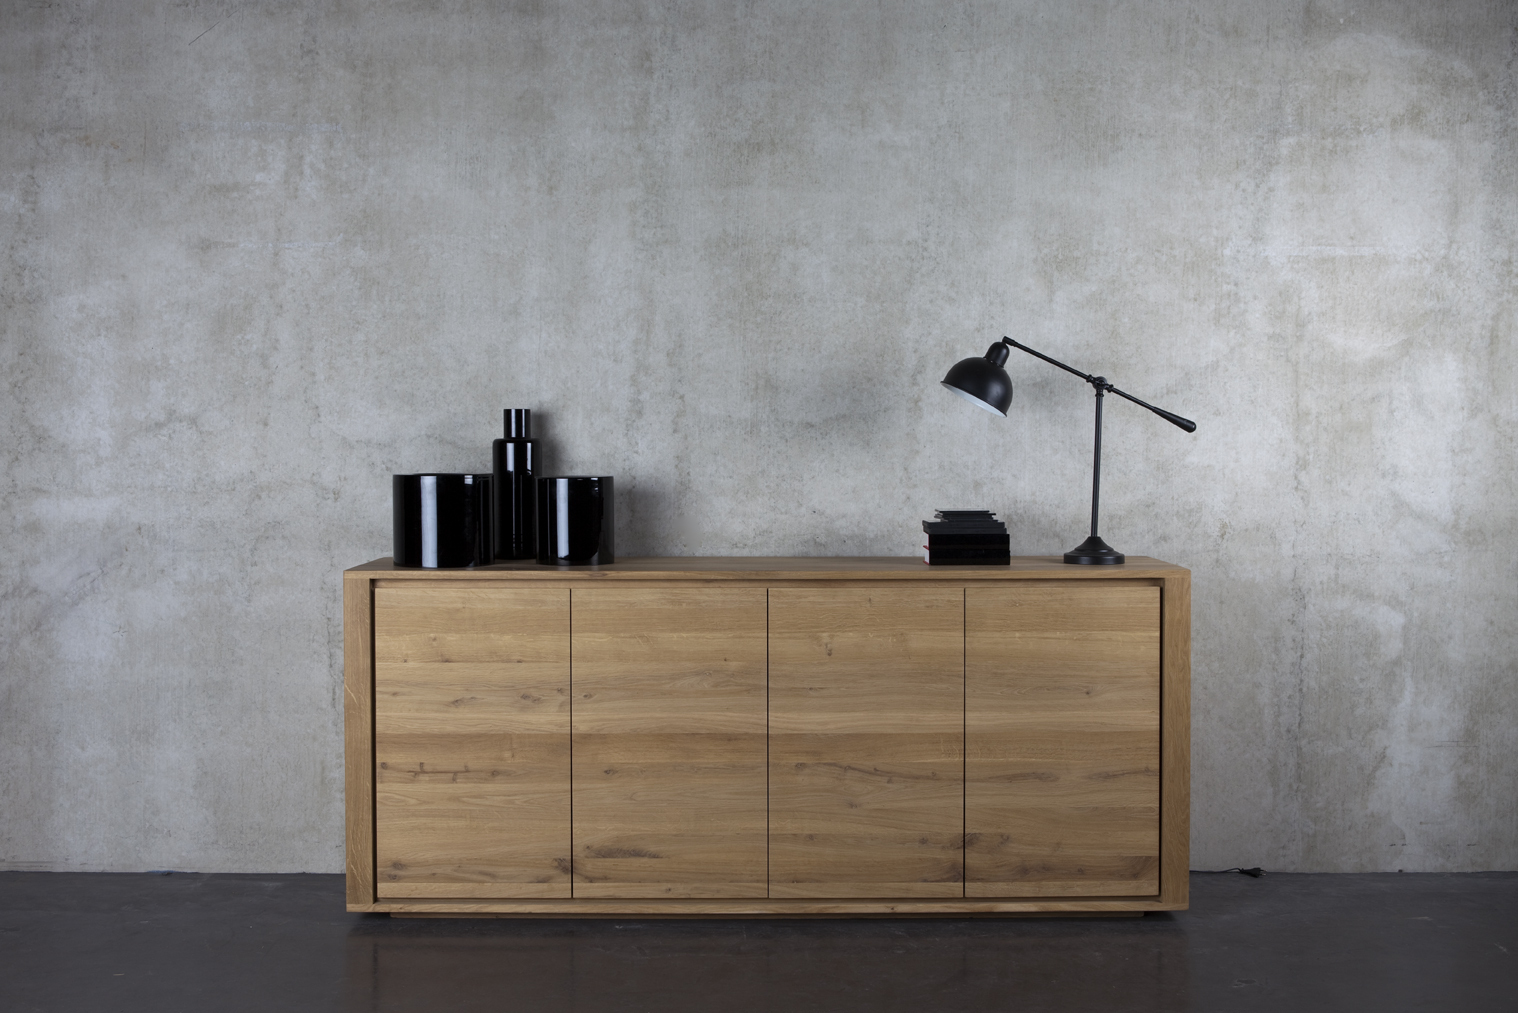 ethnicraft oak shadow 250 cm sideboard teakwoodstore24. Black Bedroom Furniture Sets. Home Design Ideas